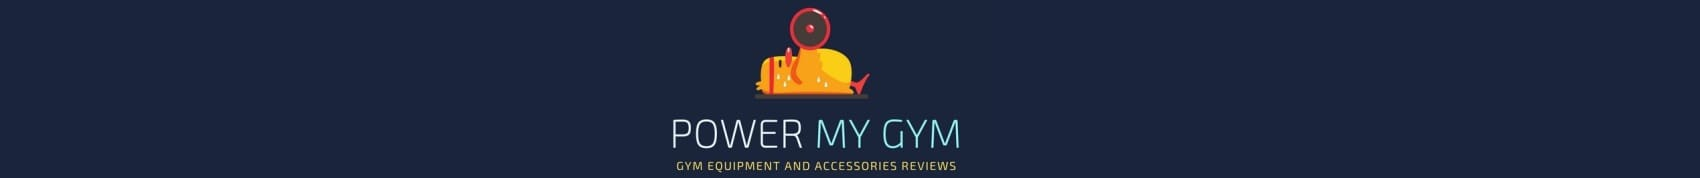 Power My Gym